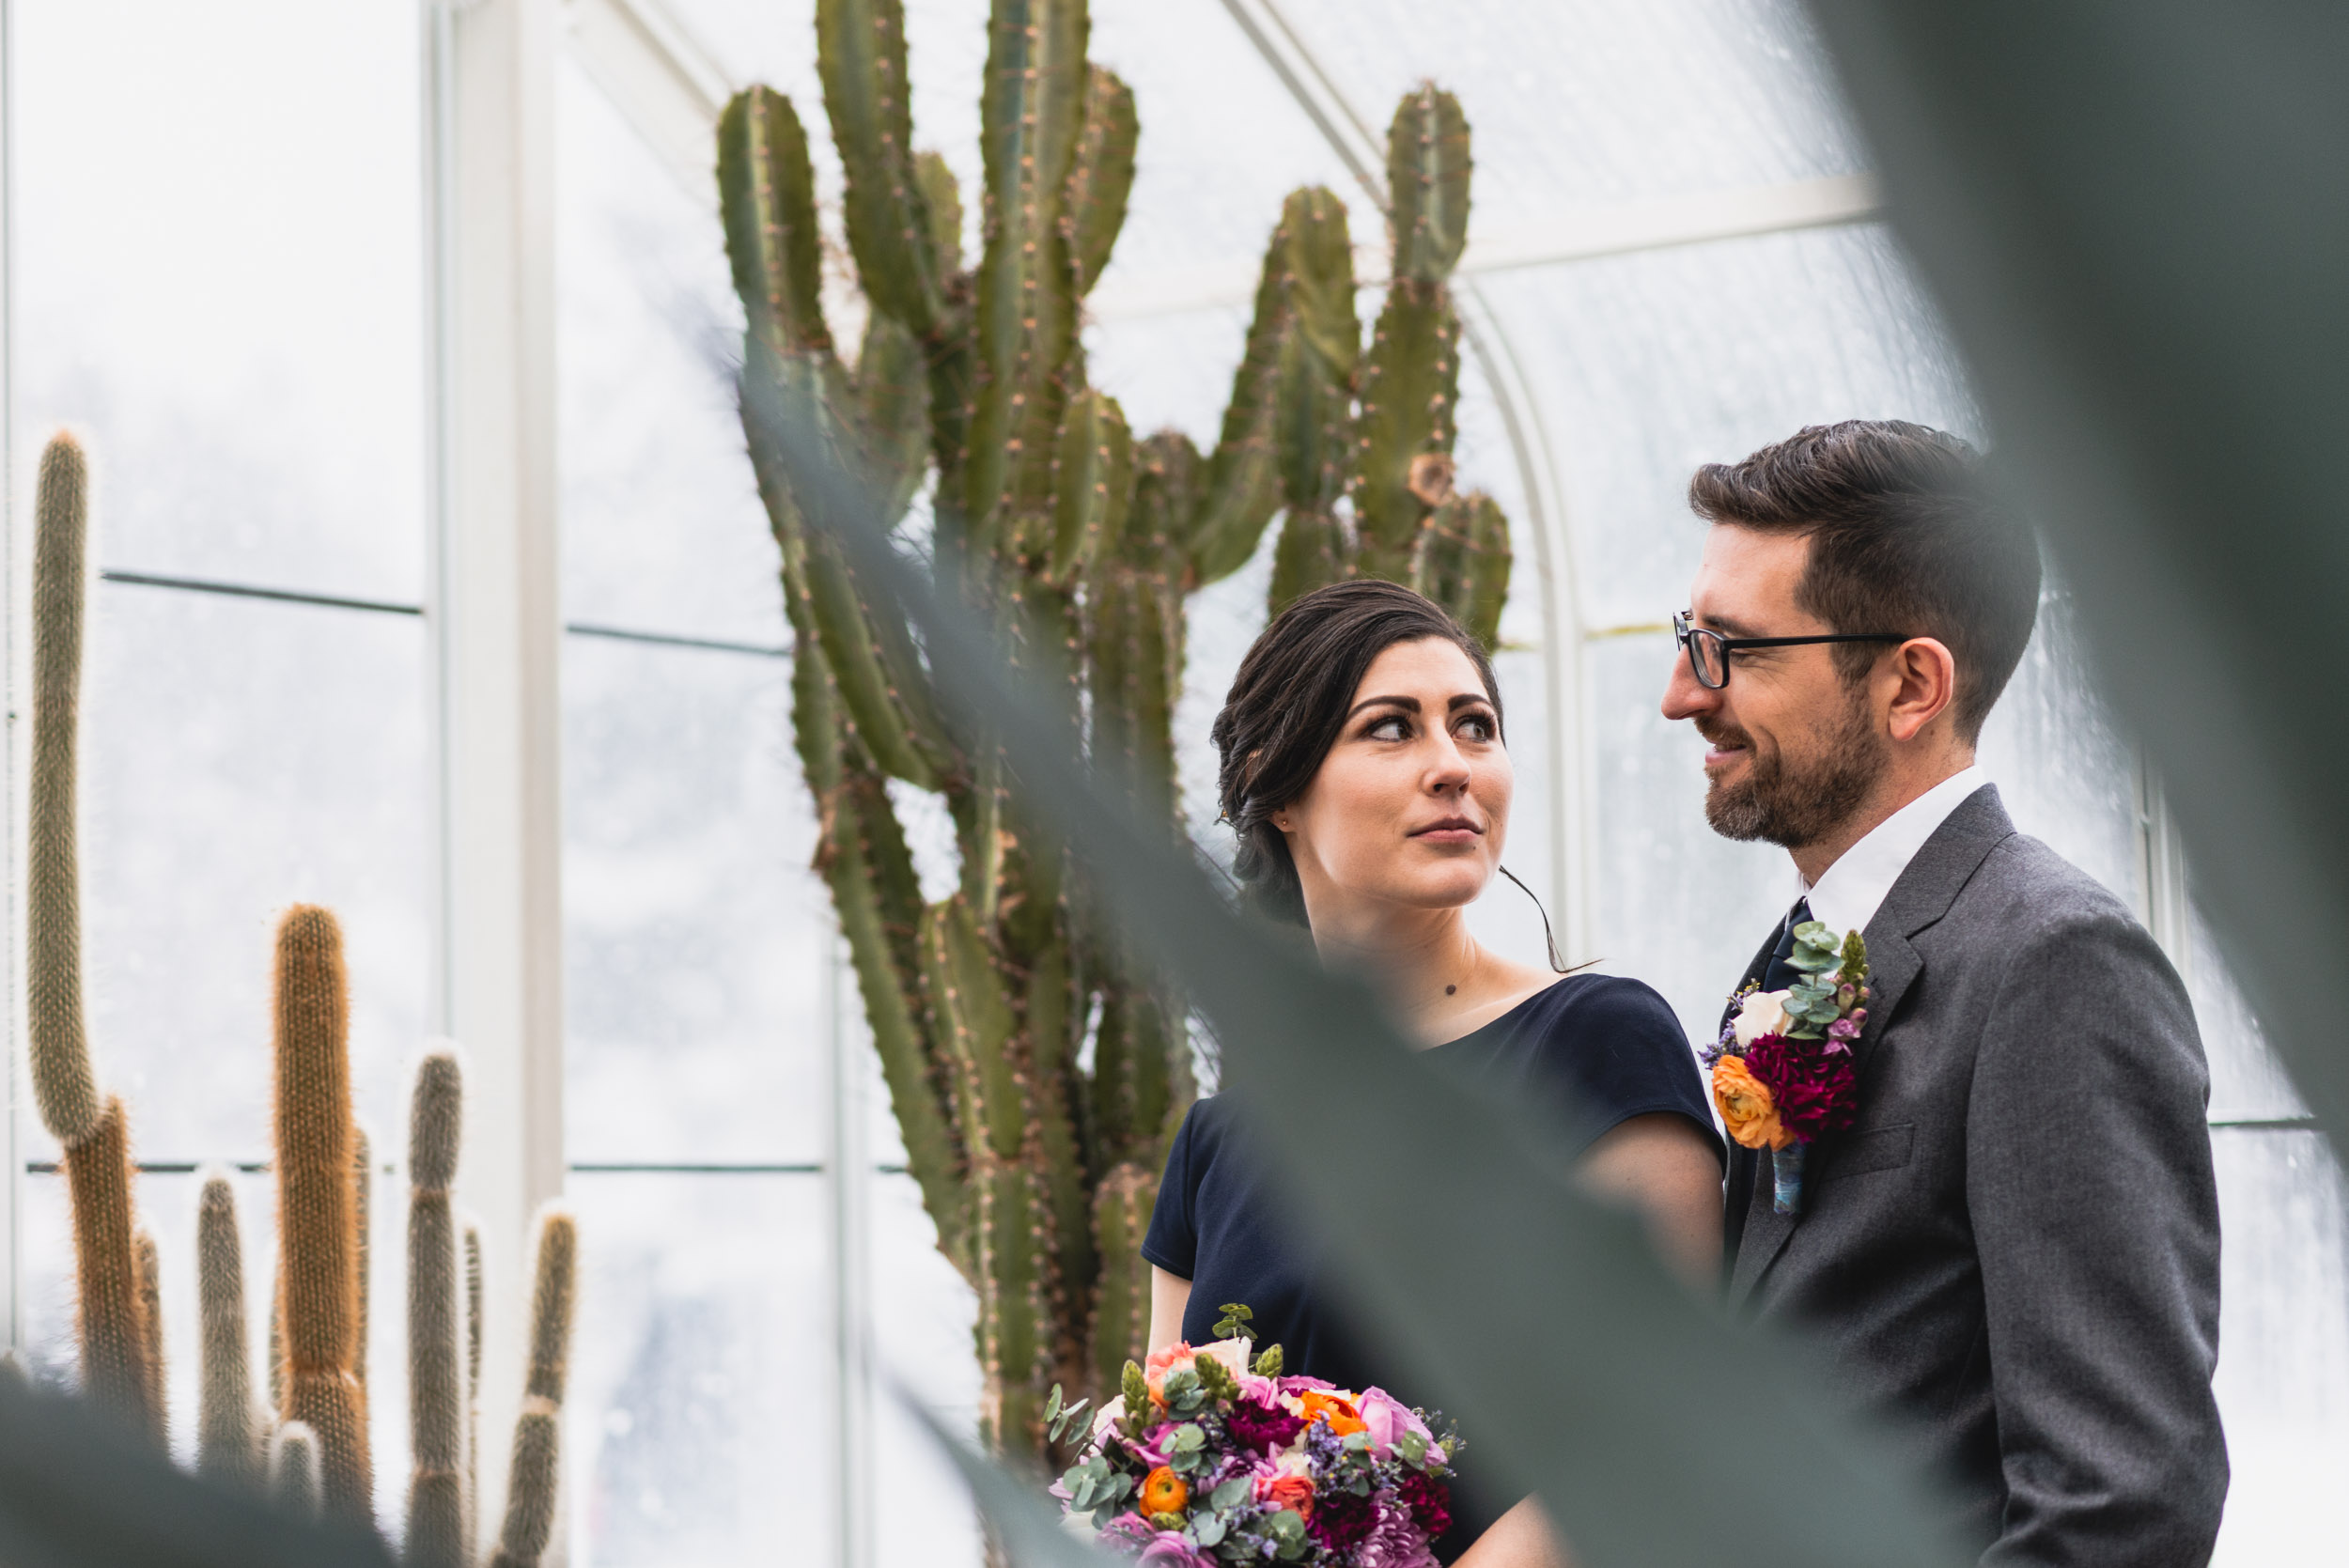 Bride and groom among plants